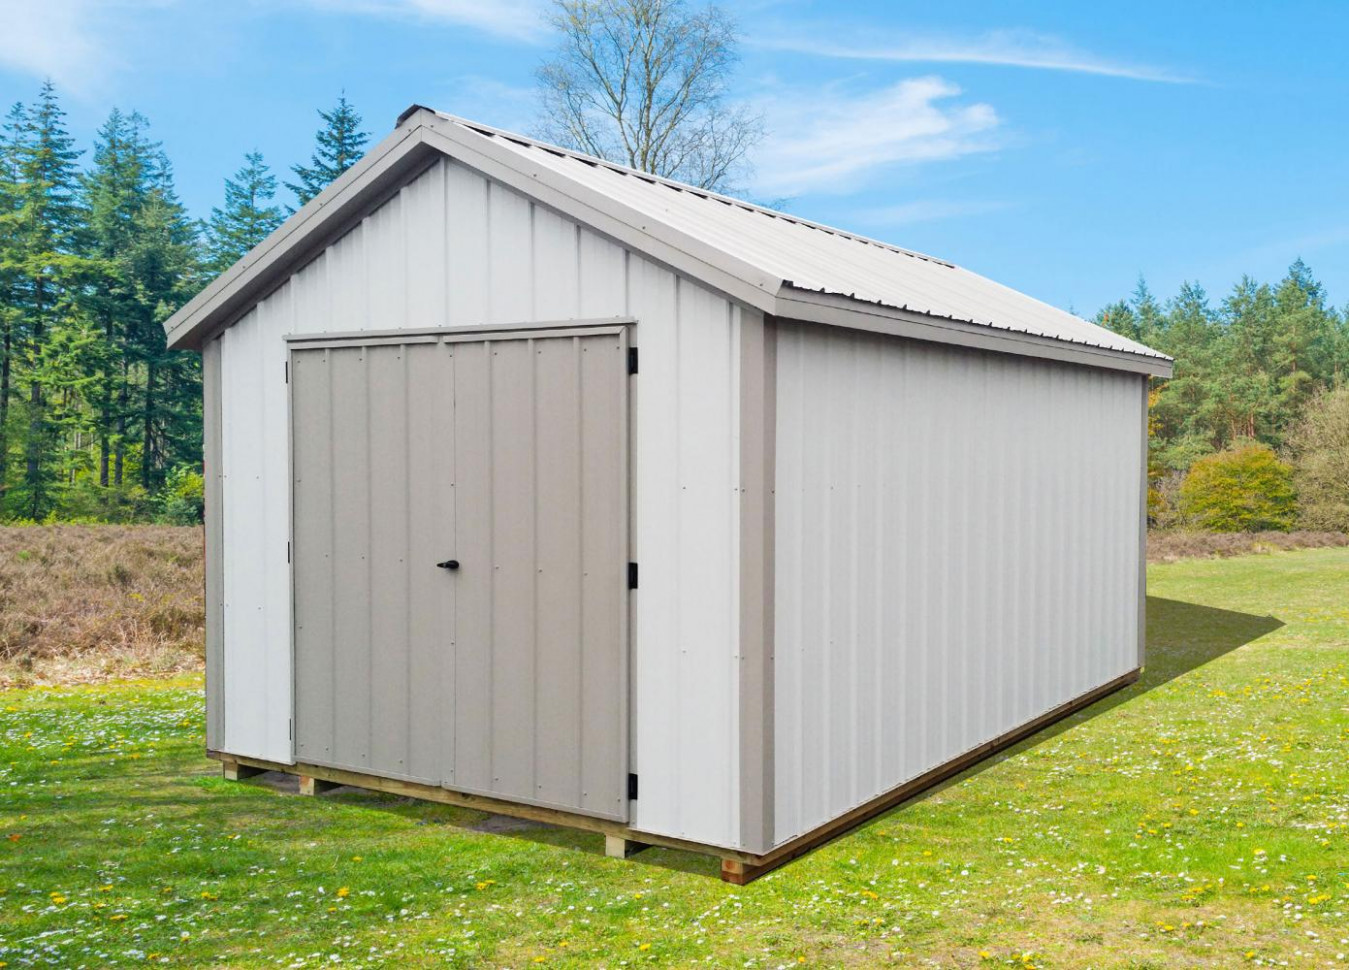 Steel Garden Sheds For Sale In Minnesota And Wisconsin ..